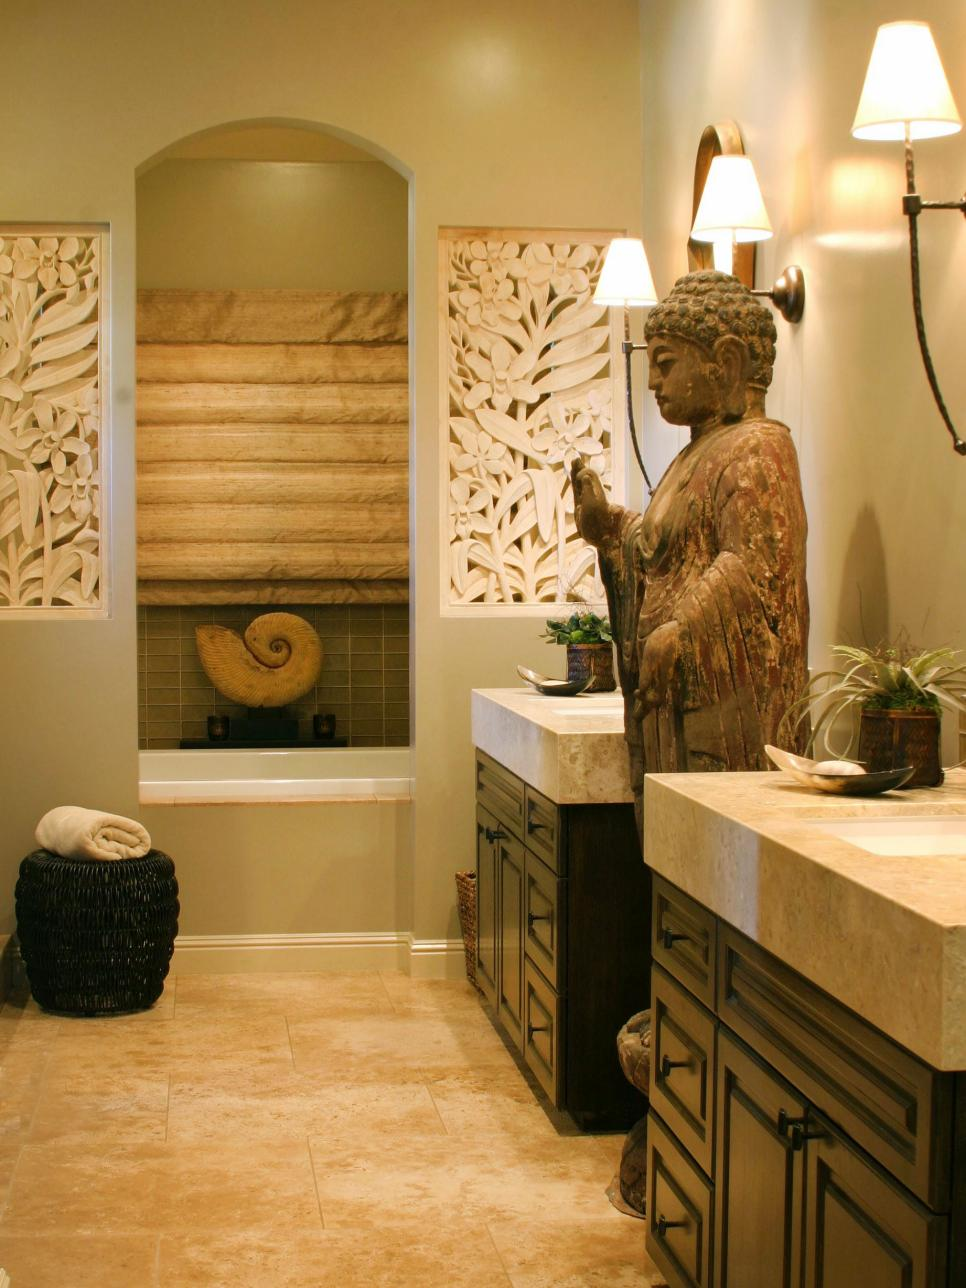 Asian design ideas hgtv for Asian inspired decor